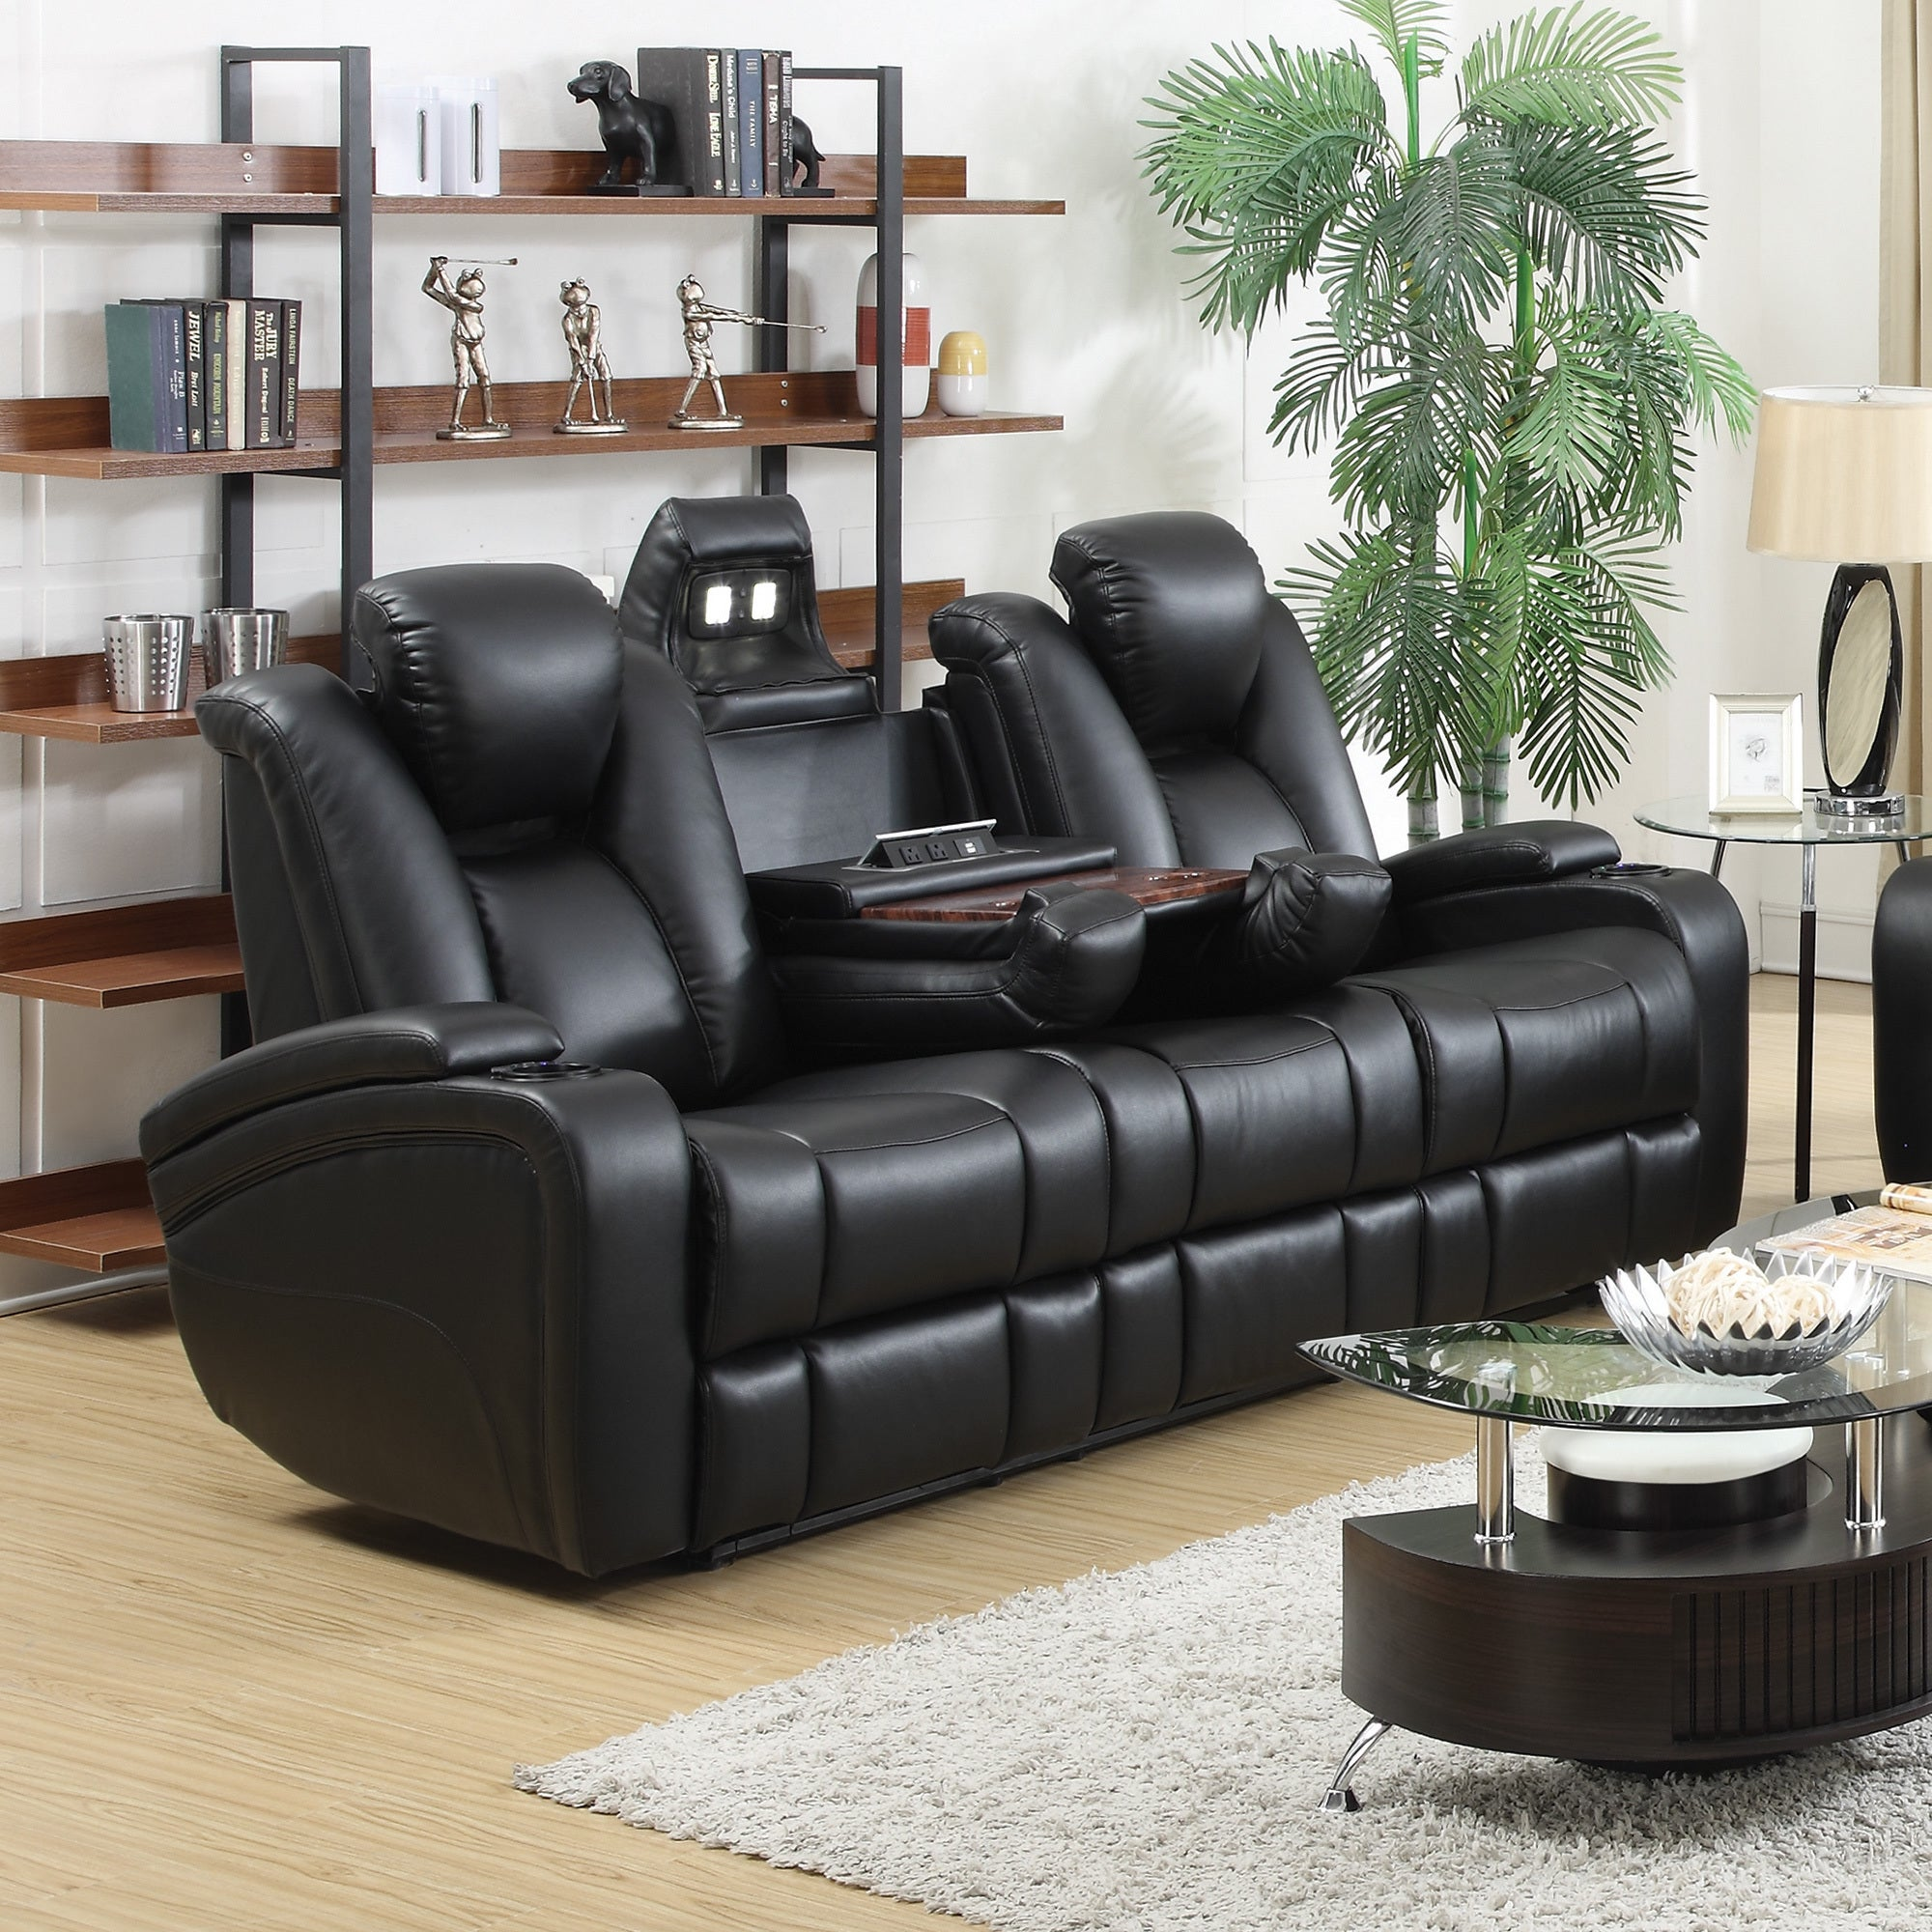 Shop Coaster Company Black Leatherette Power Recliner Motion Sofa   Free  Shipping Today   Overstock.com   12539099